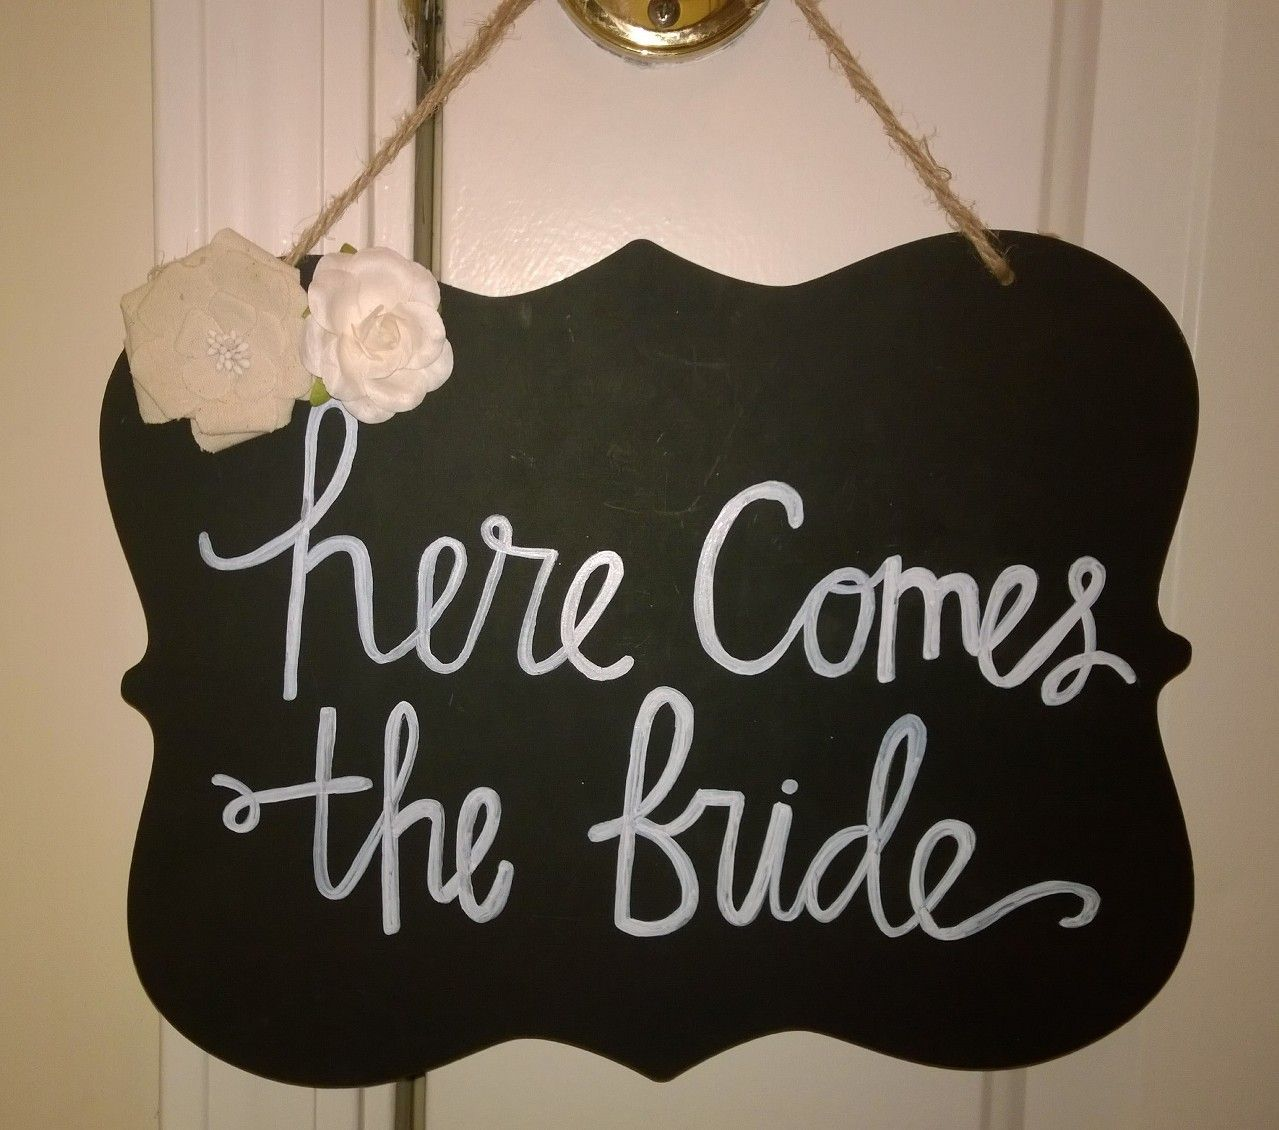 """Here Comes the Bride"" wooden sign from Something Sweet Vintage Boutique in Kansas City. www.Facebook.com/somethingsweetkc"